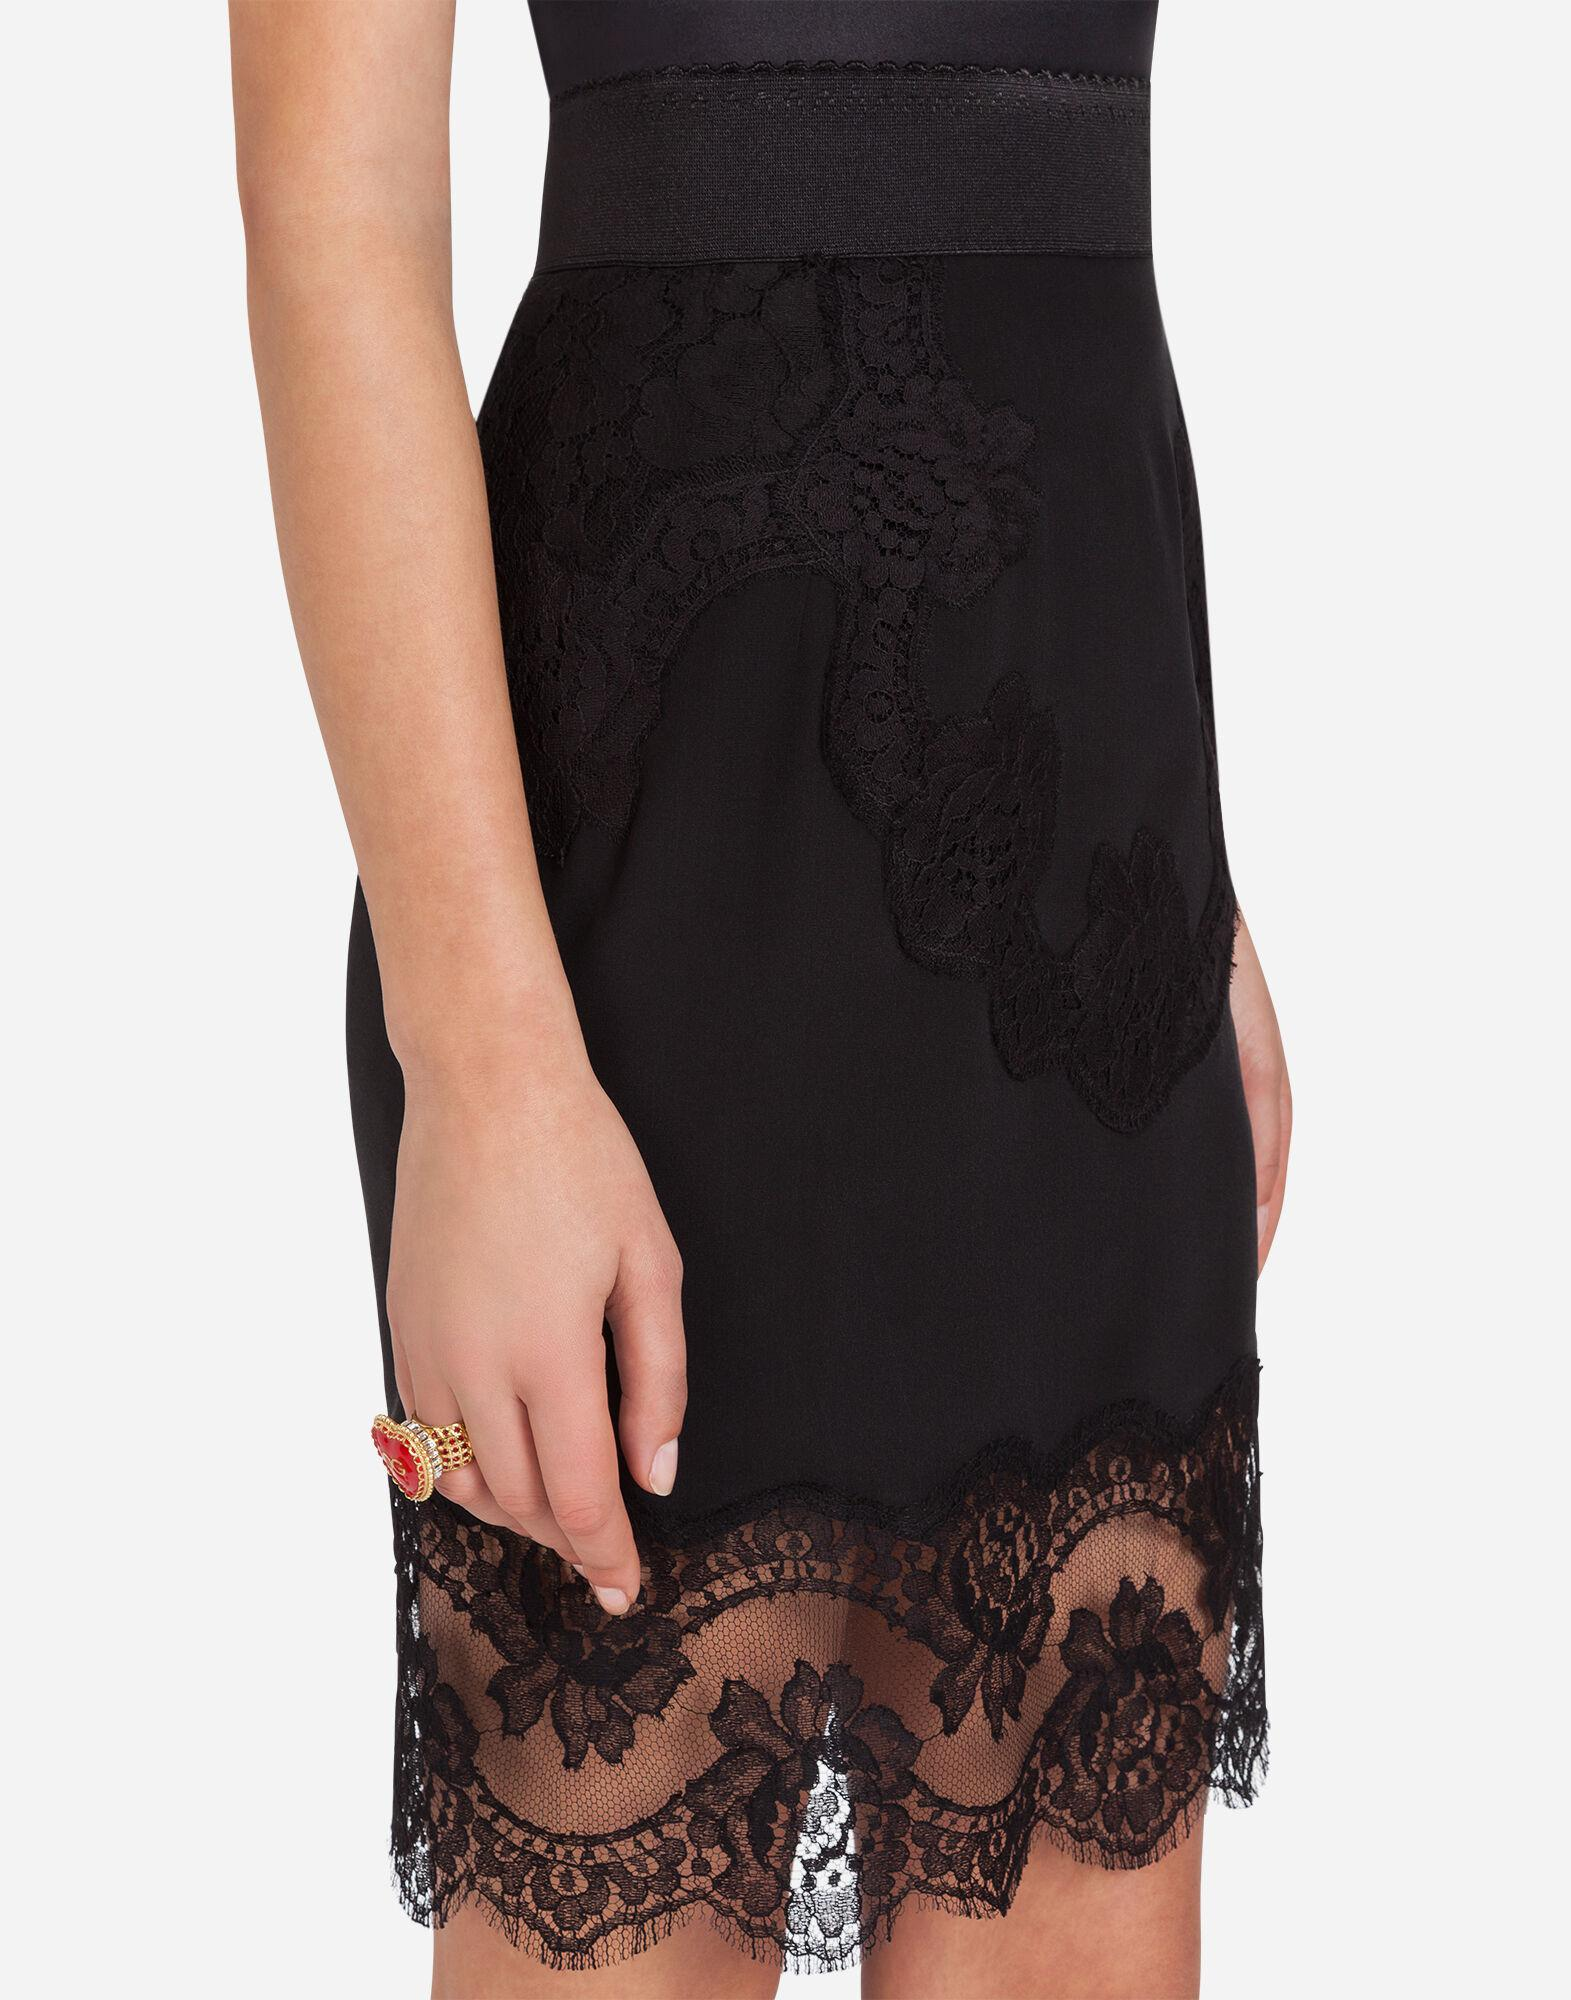 Lingerie short skirt in crepe-de-chine and lace